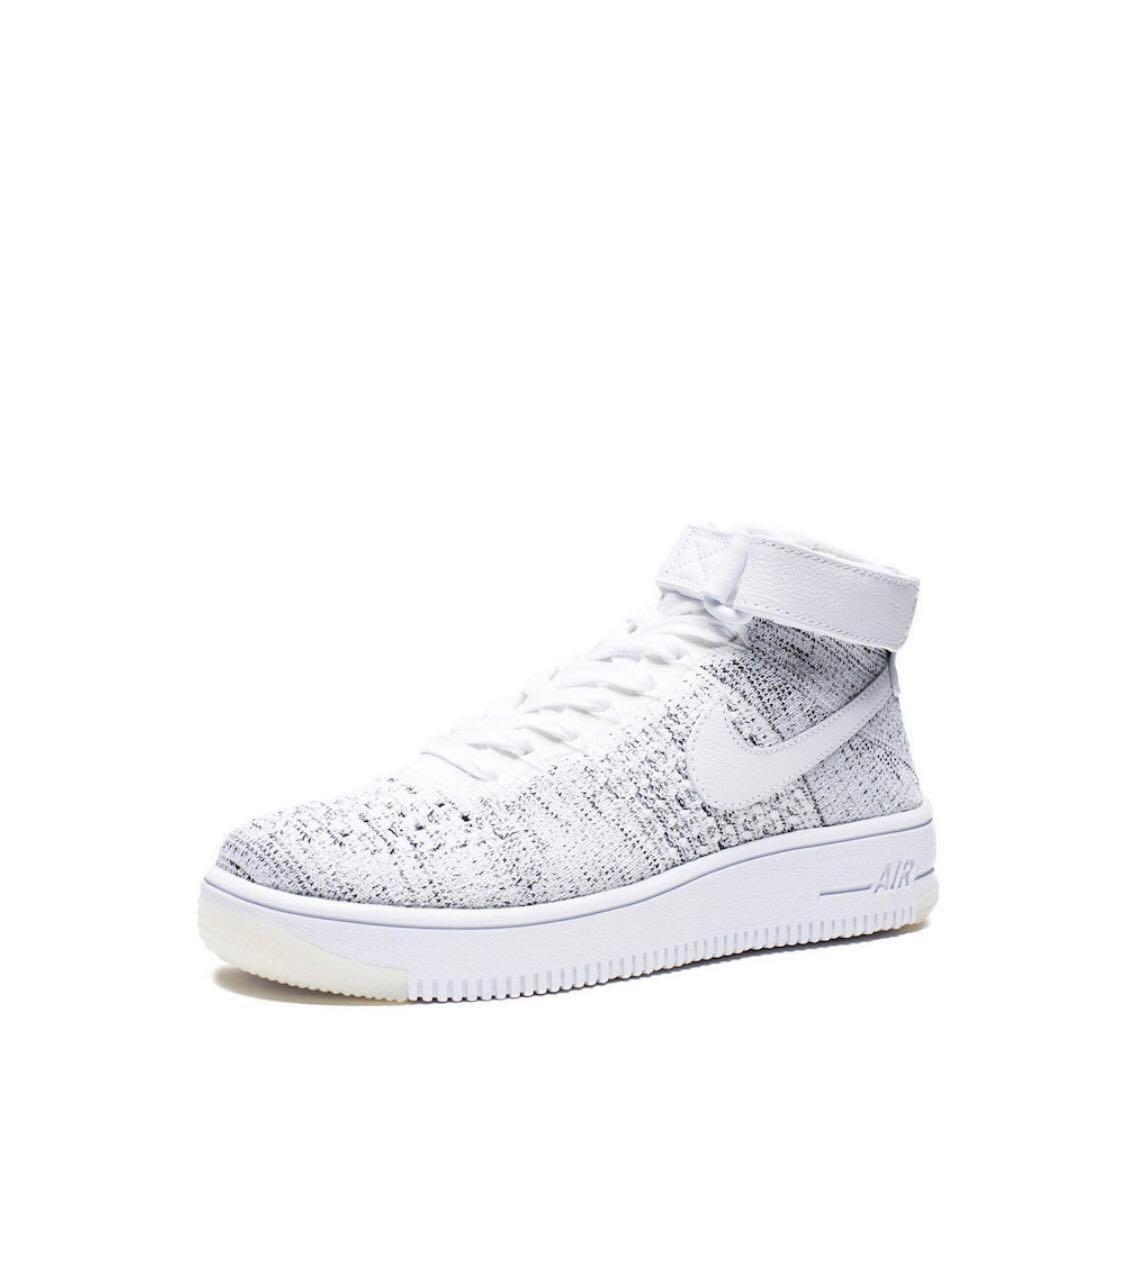 competitive price c647f 98261 Nike air force 1 ultra flyknit, Women's Fashion, Shoes ...